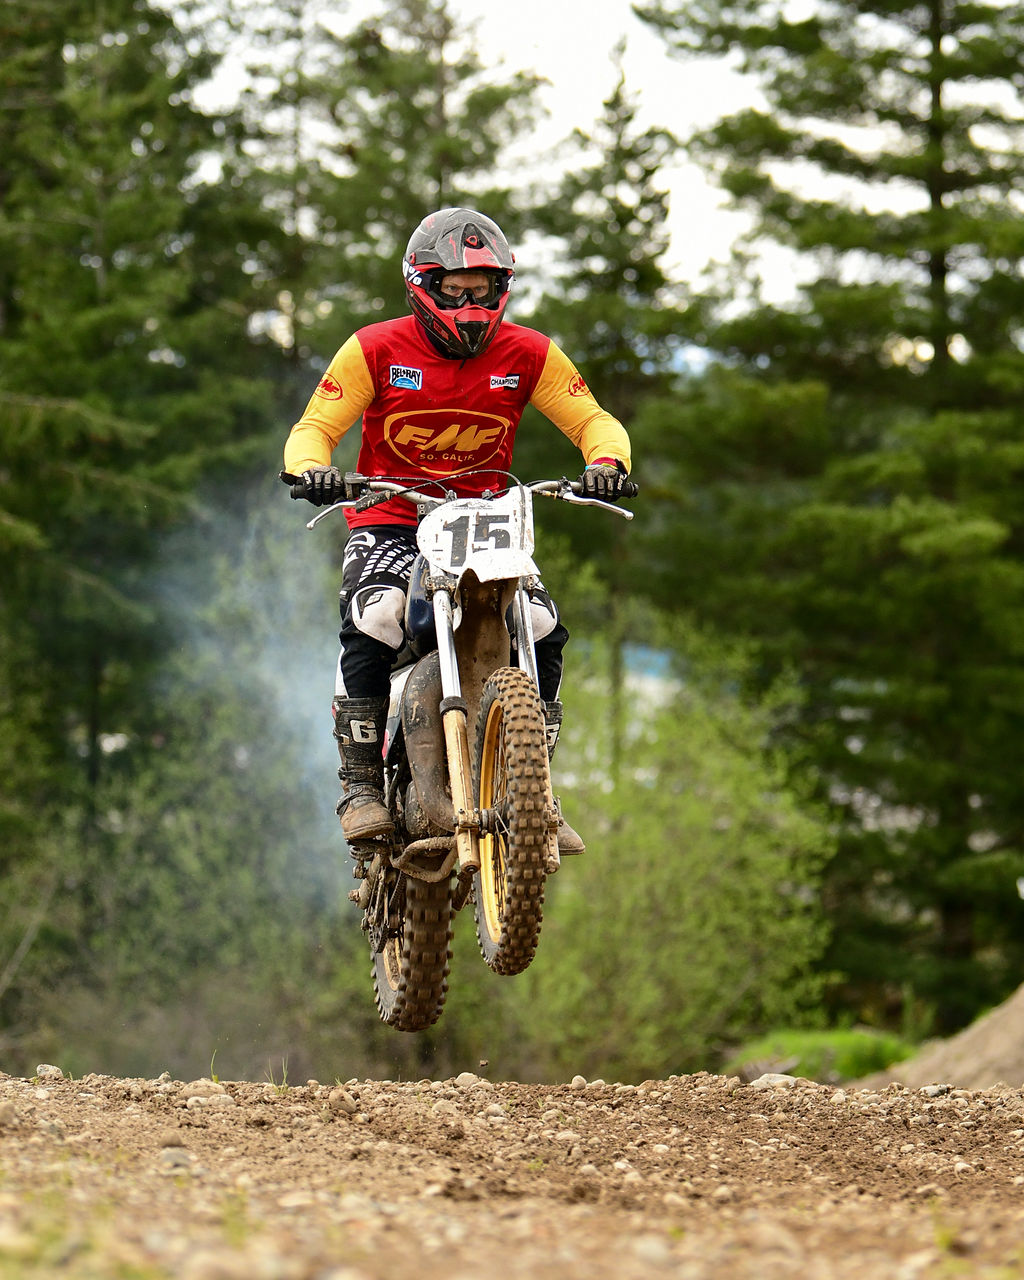 Isaac Siegl racing his Husqvarna WR250 in Vintage Motocross